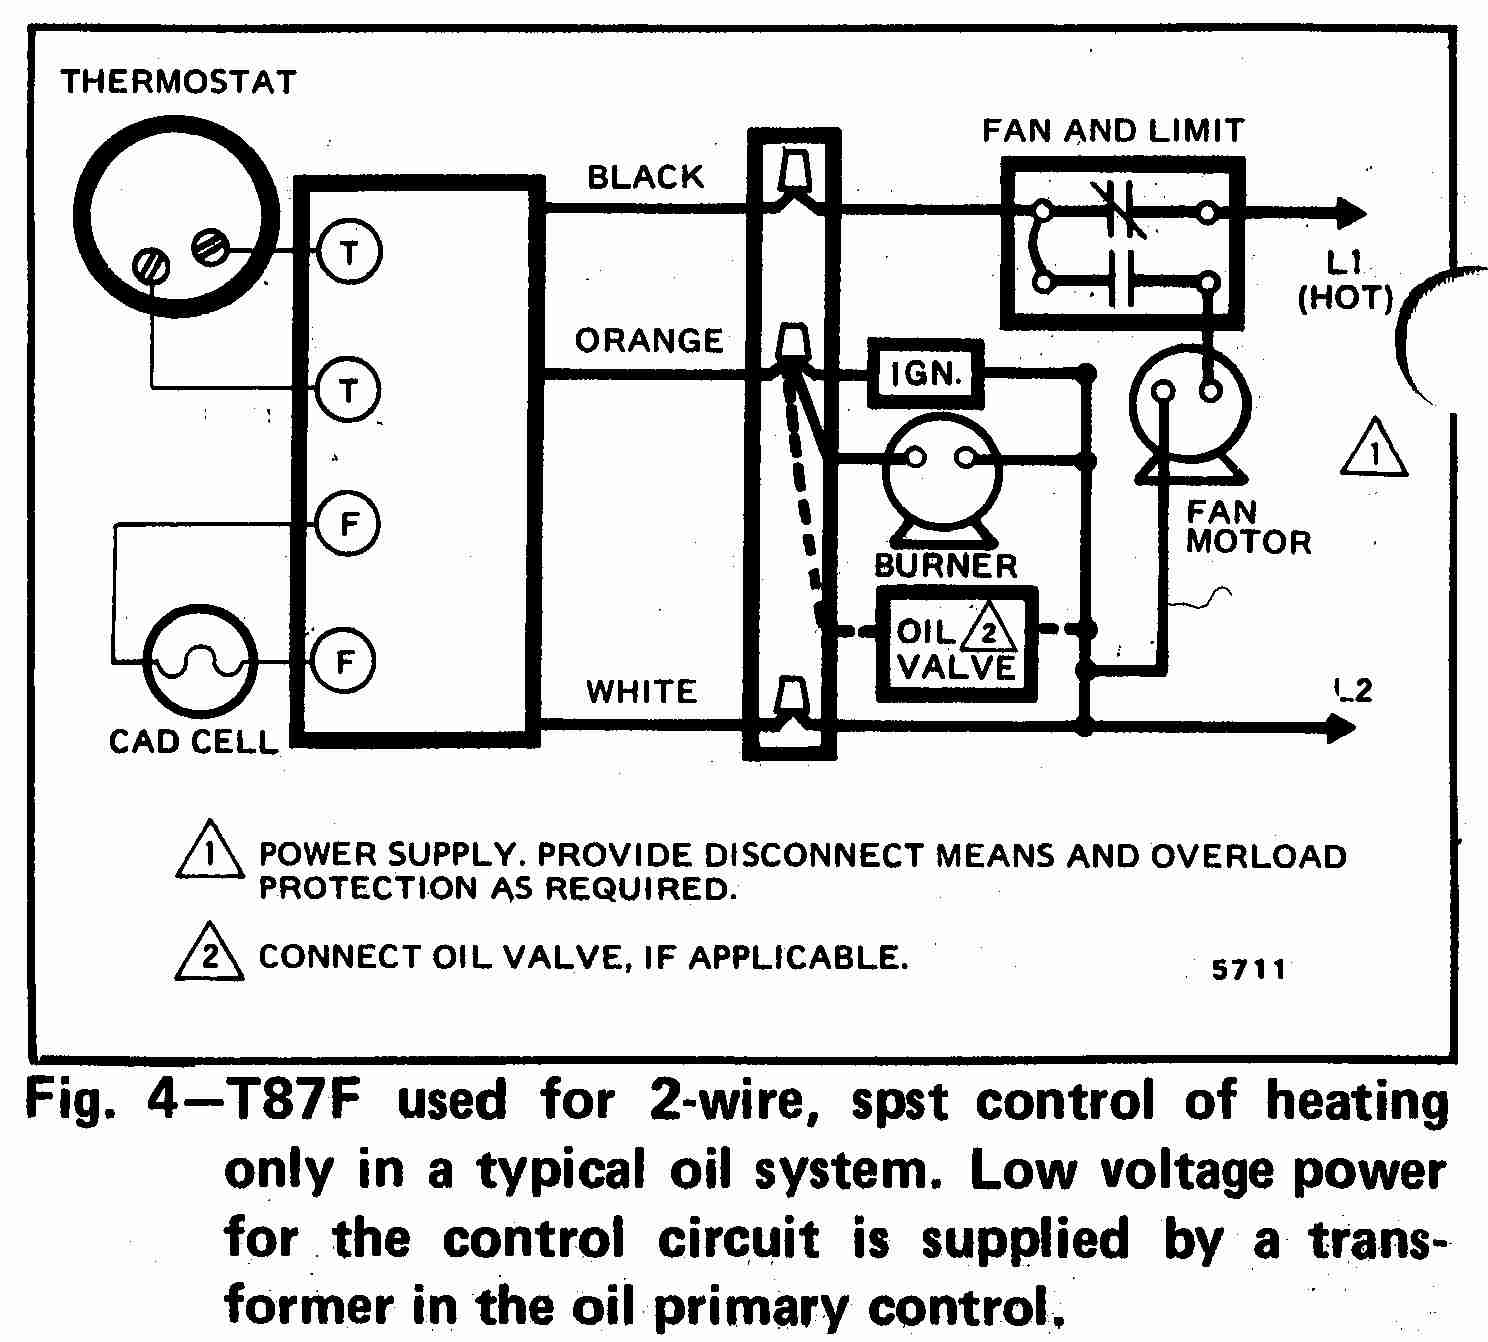 room thermostat wiring diagrams for hvac systems rh inspectapedia com wiring diagram for thermostat with heat pump wiring diagram for thermostat water heater